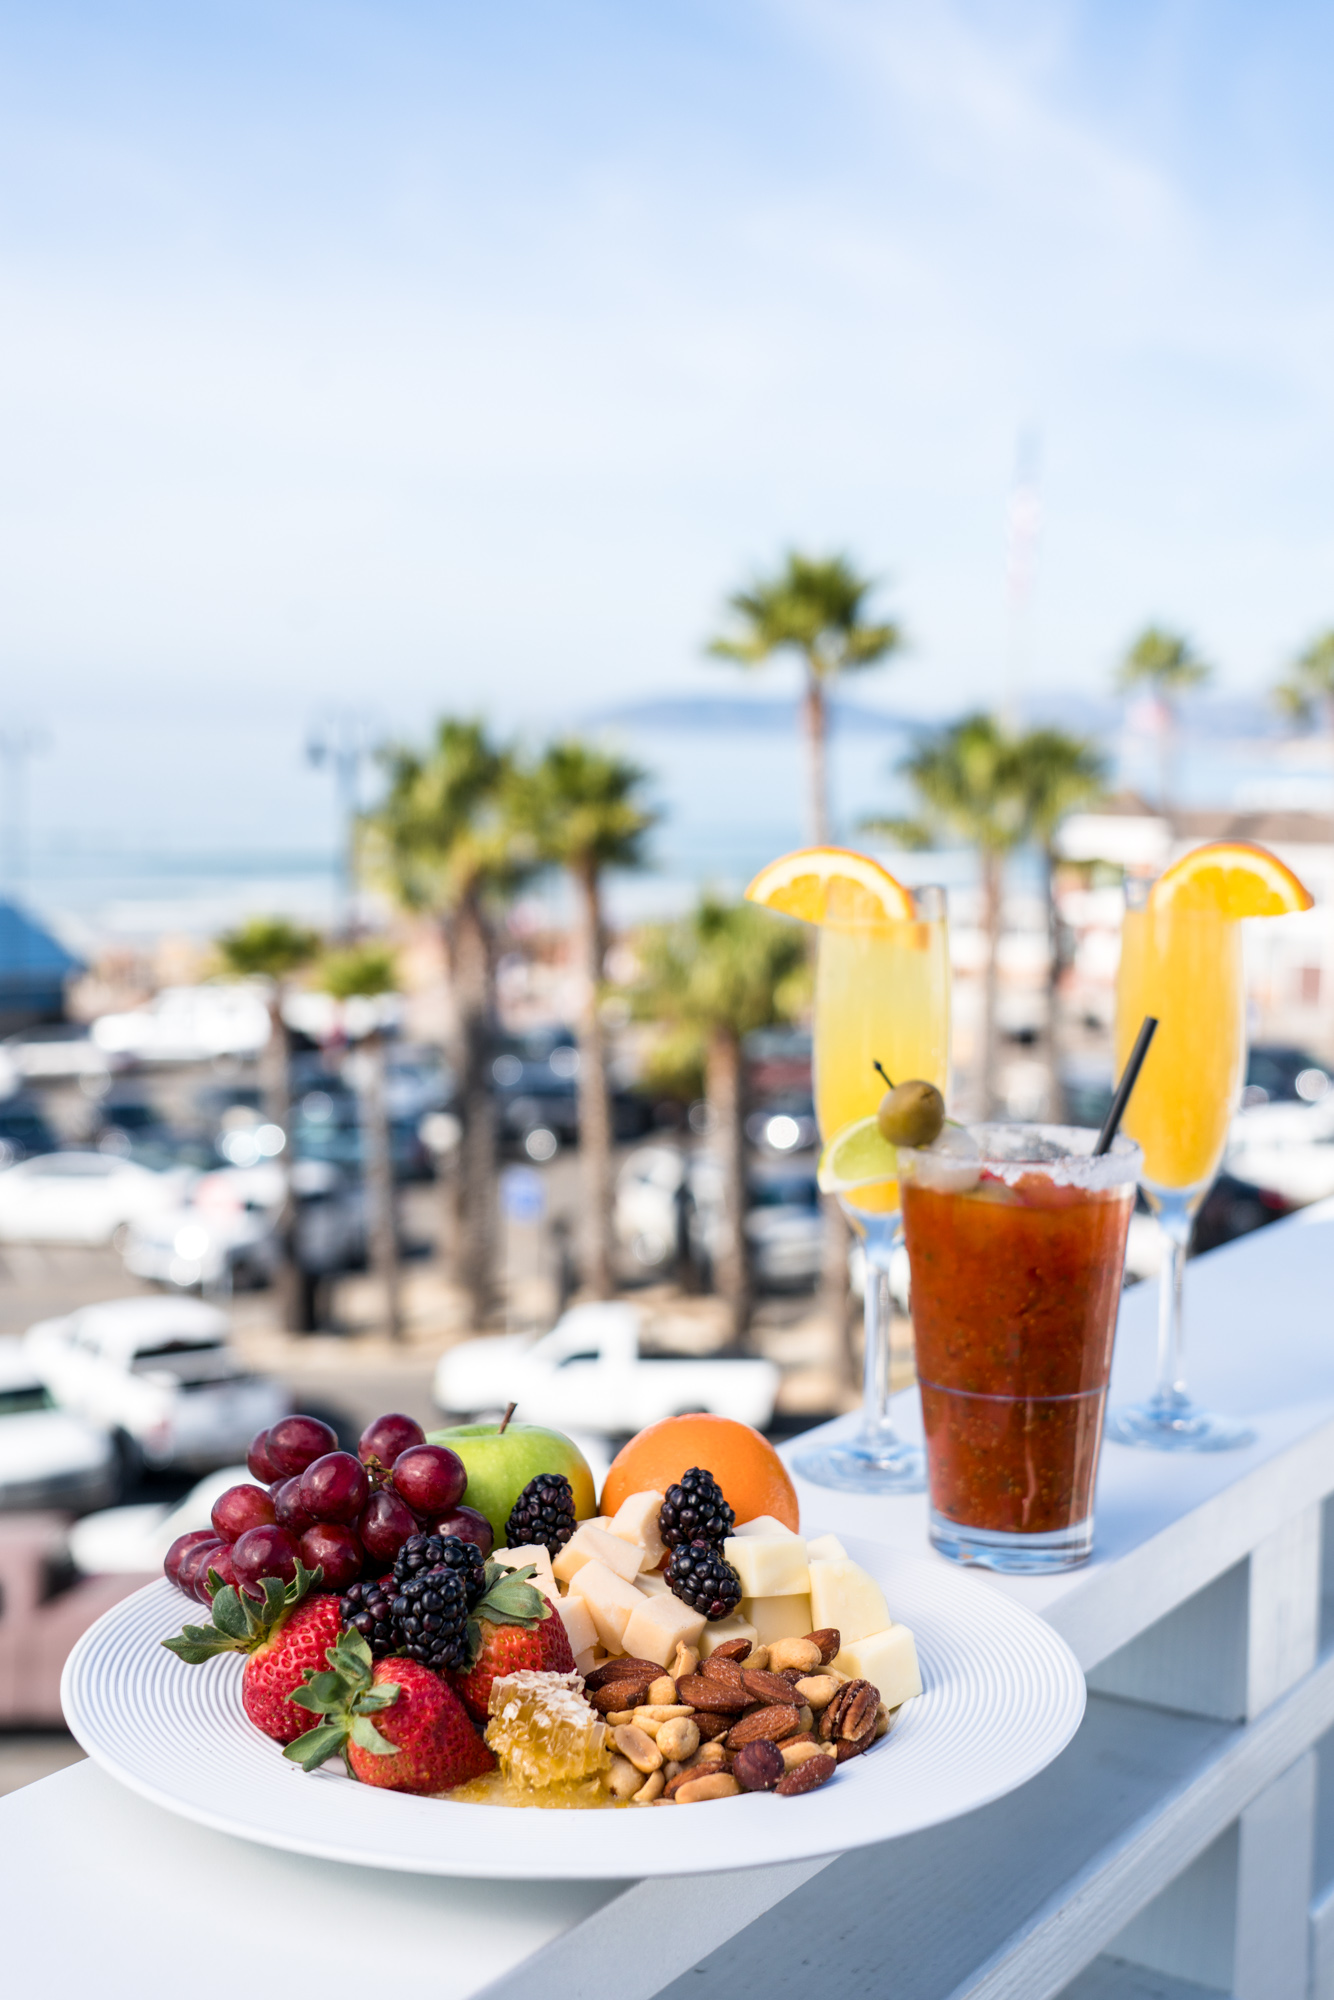 Fruit Plate and Cocktails at The Rooftop at Inn at the Pier, Pismo Beach, CA